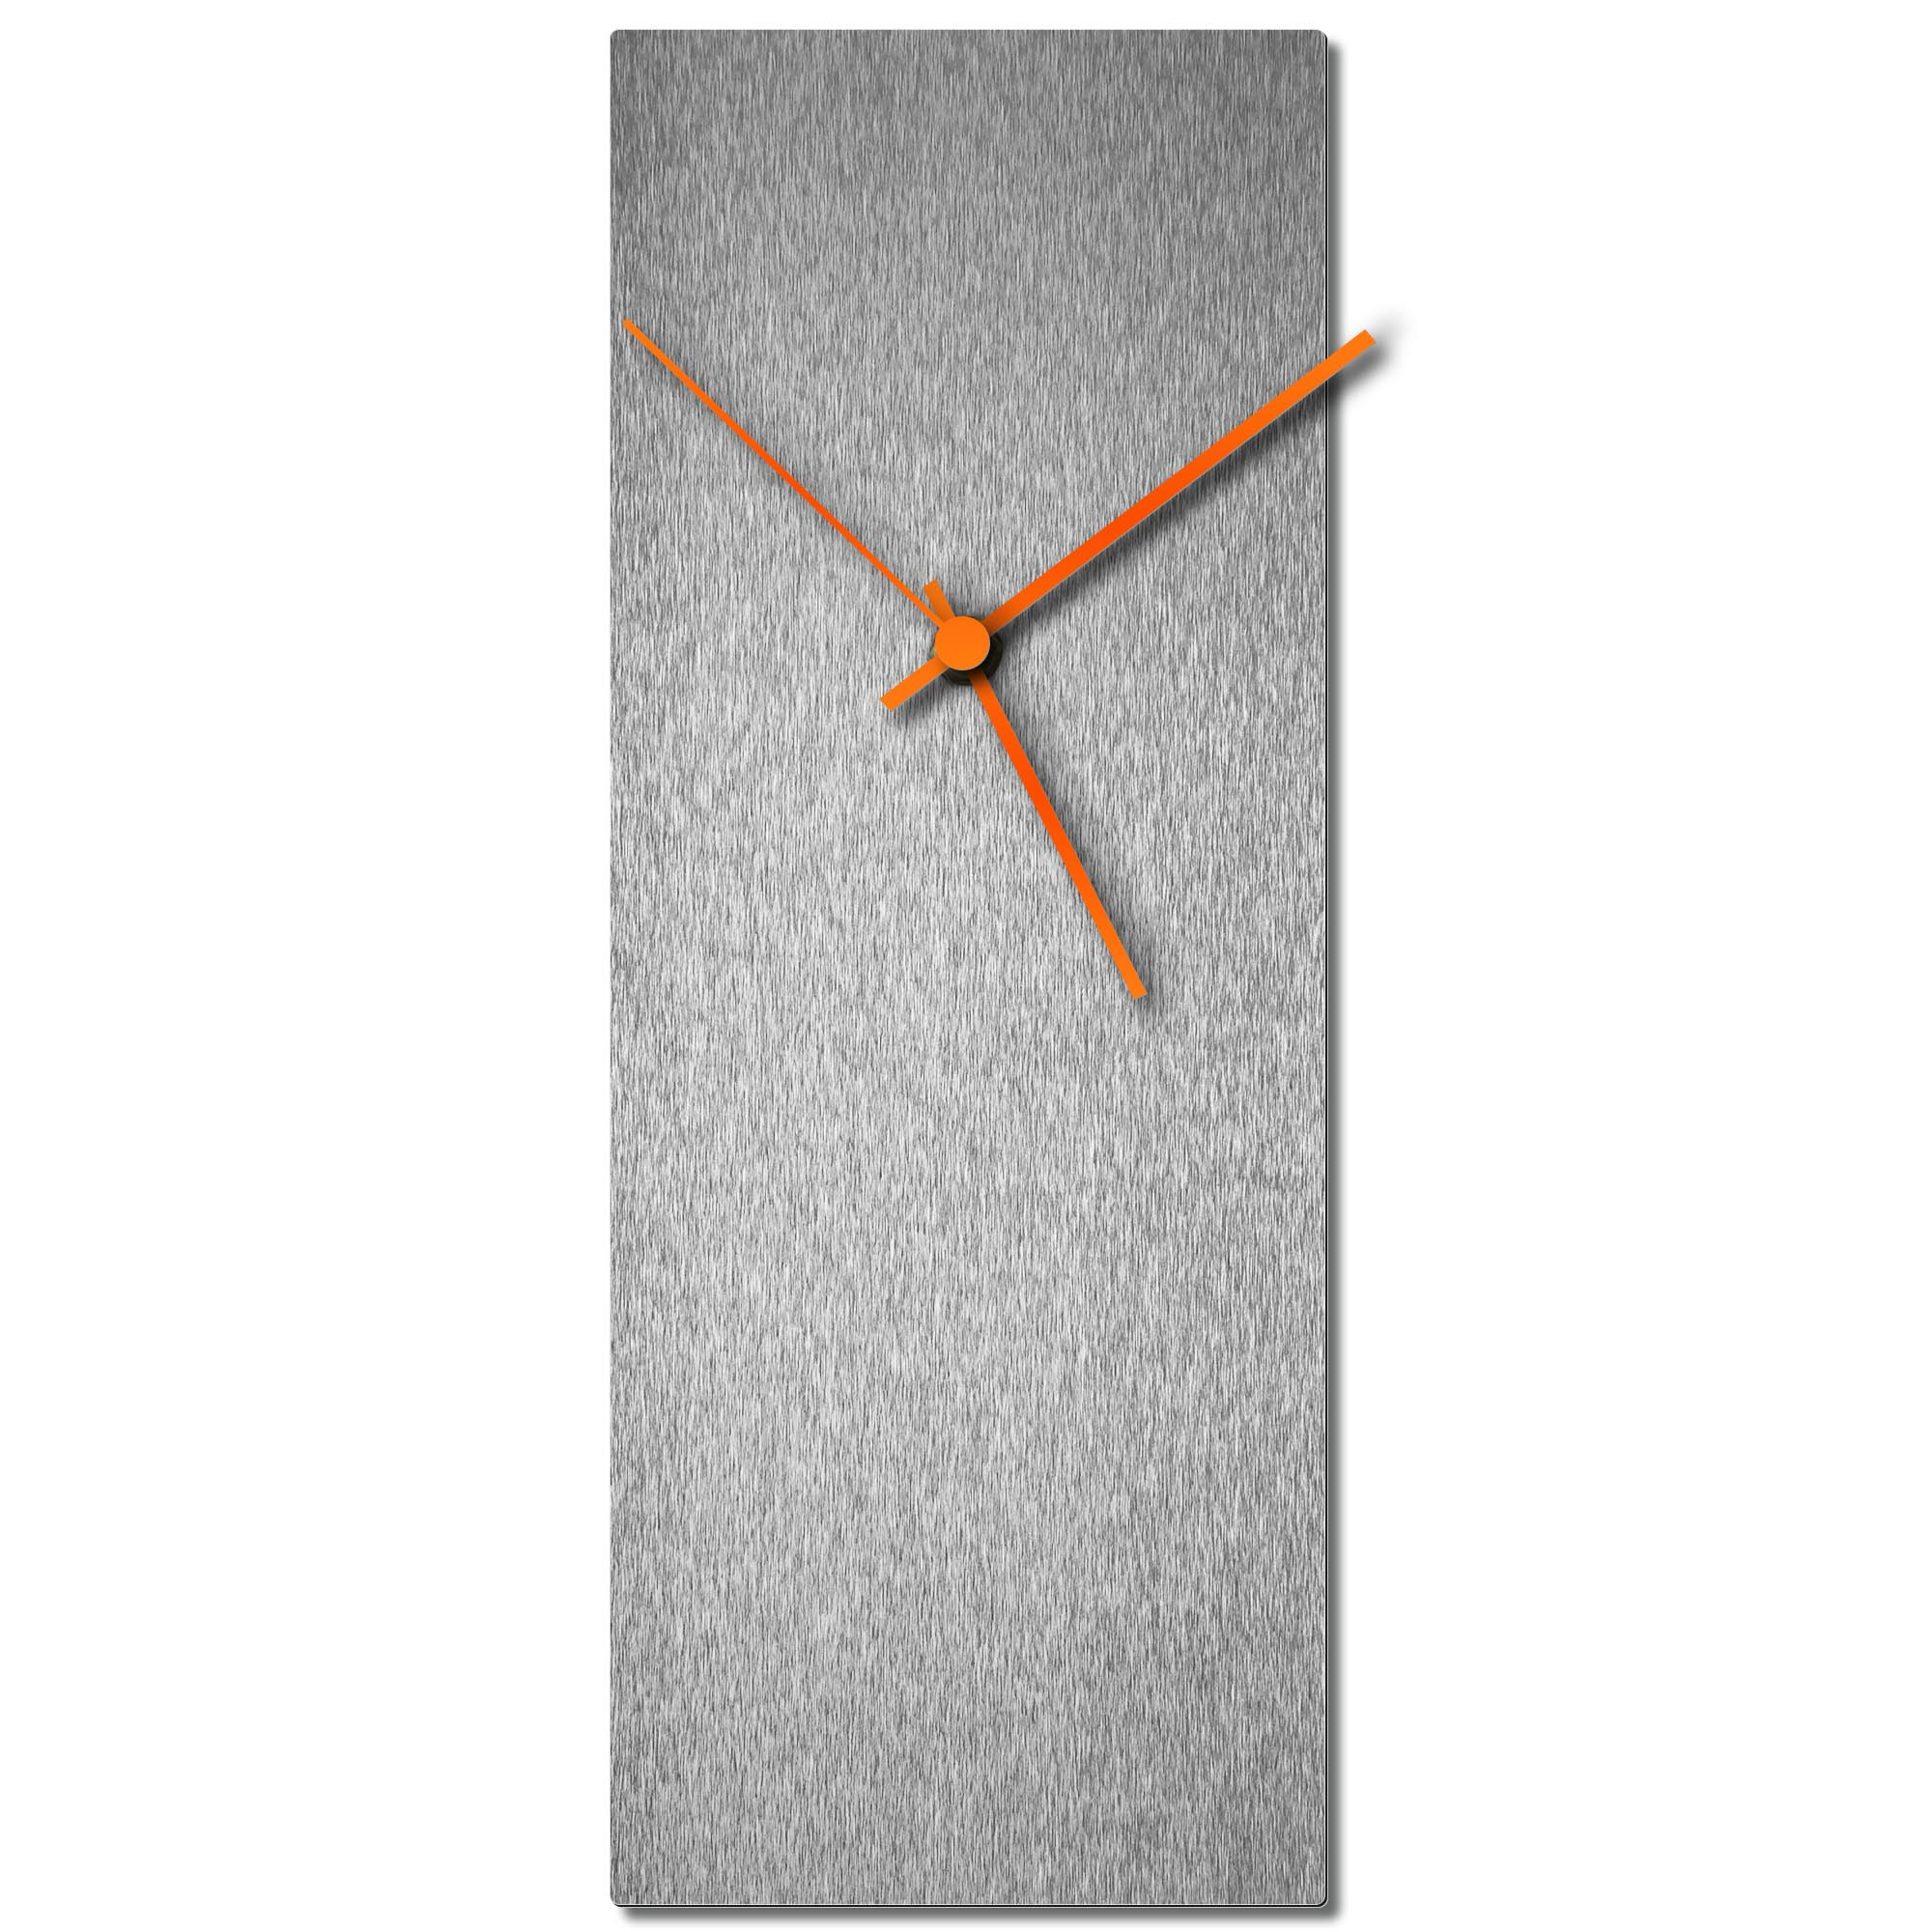 Adam Schwoeppe 'Silversmith Clock Large Orange' Midcentury Modern Style Wall Clock